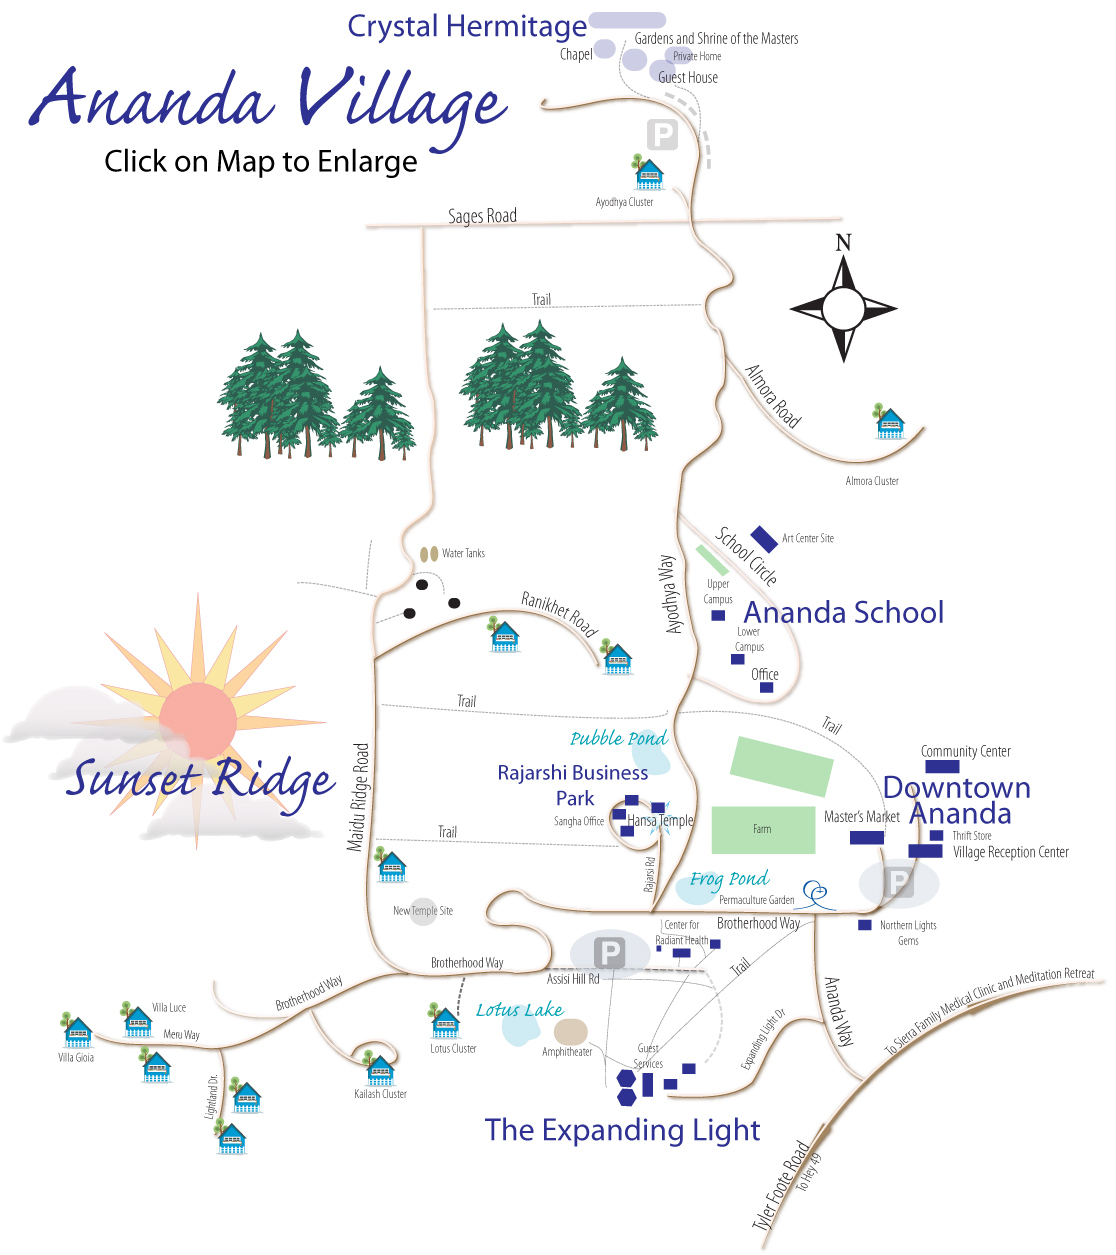 Driving Directions / Maps | Ananda Village - Printable Driving Directions Map